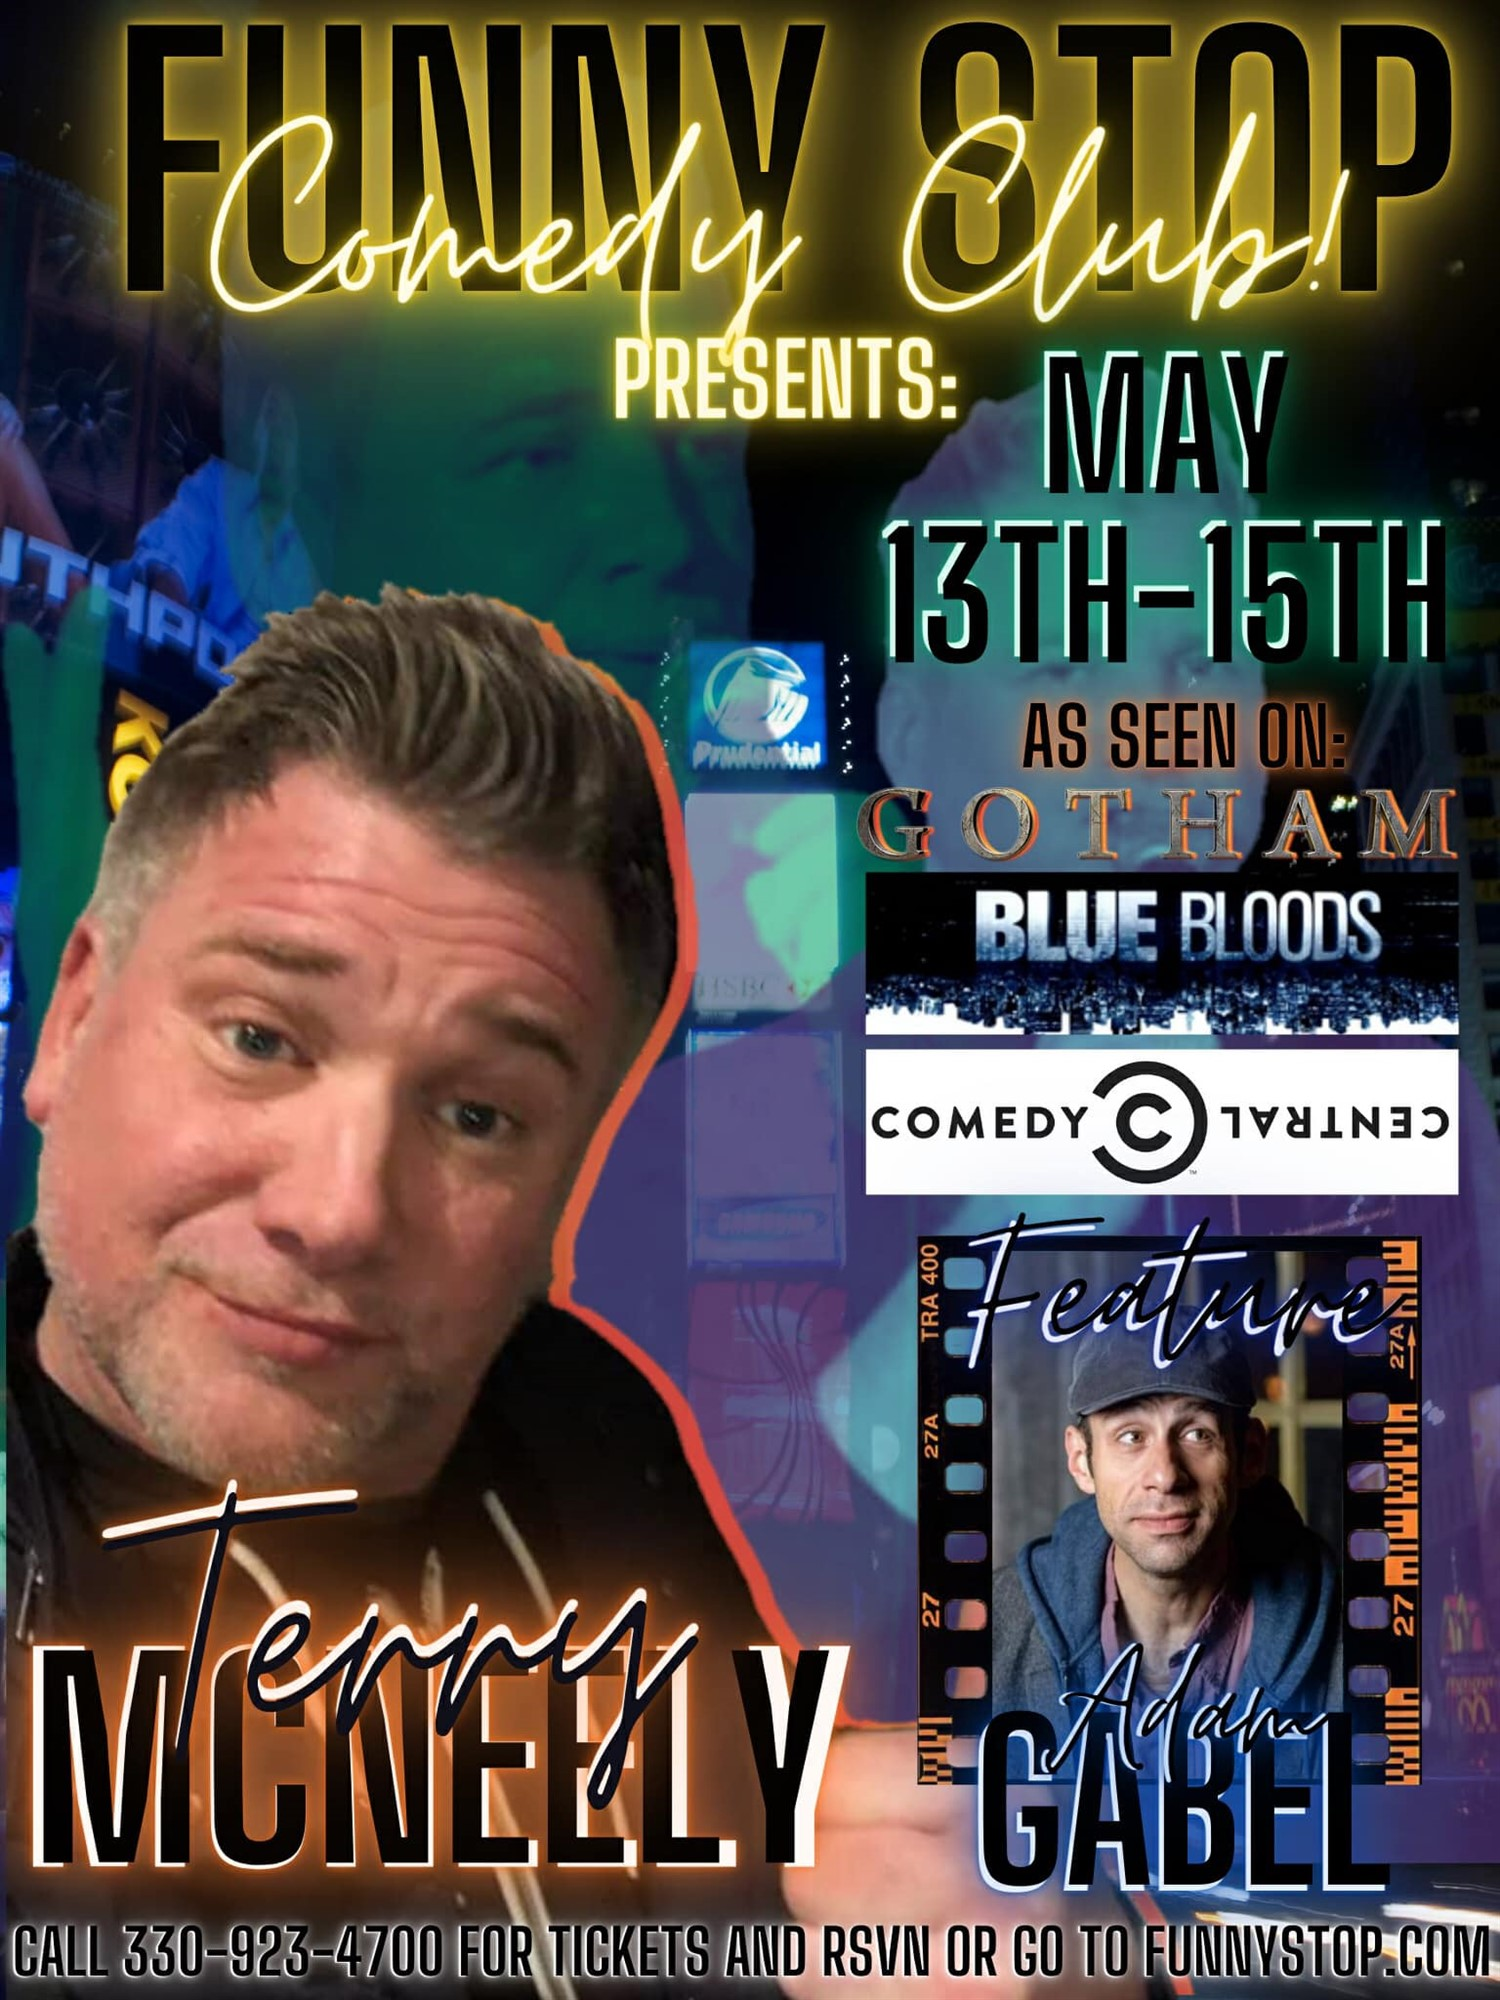 Terry McNeely Friday 9:20 Show Funny Stop Comedy Club on may. 14, 21:20@Funny Stop Comedy Club - Buy tickets and Get information on Funny Stop funnystop.online